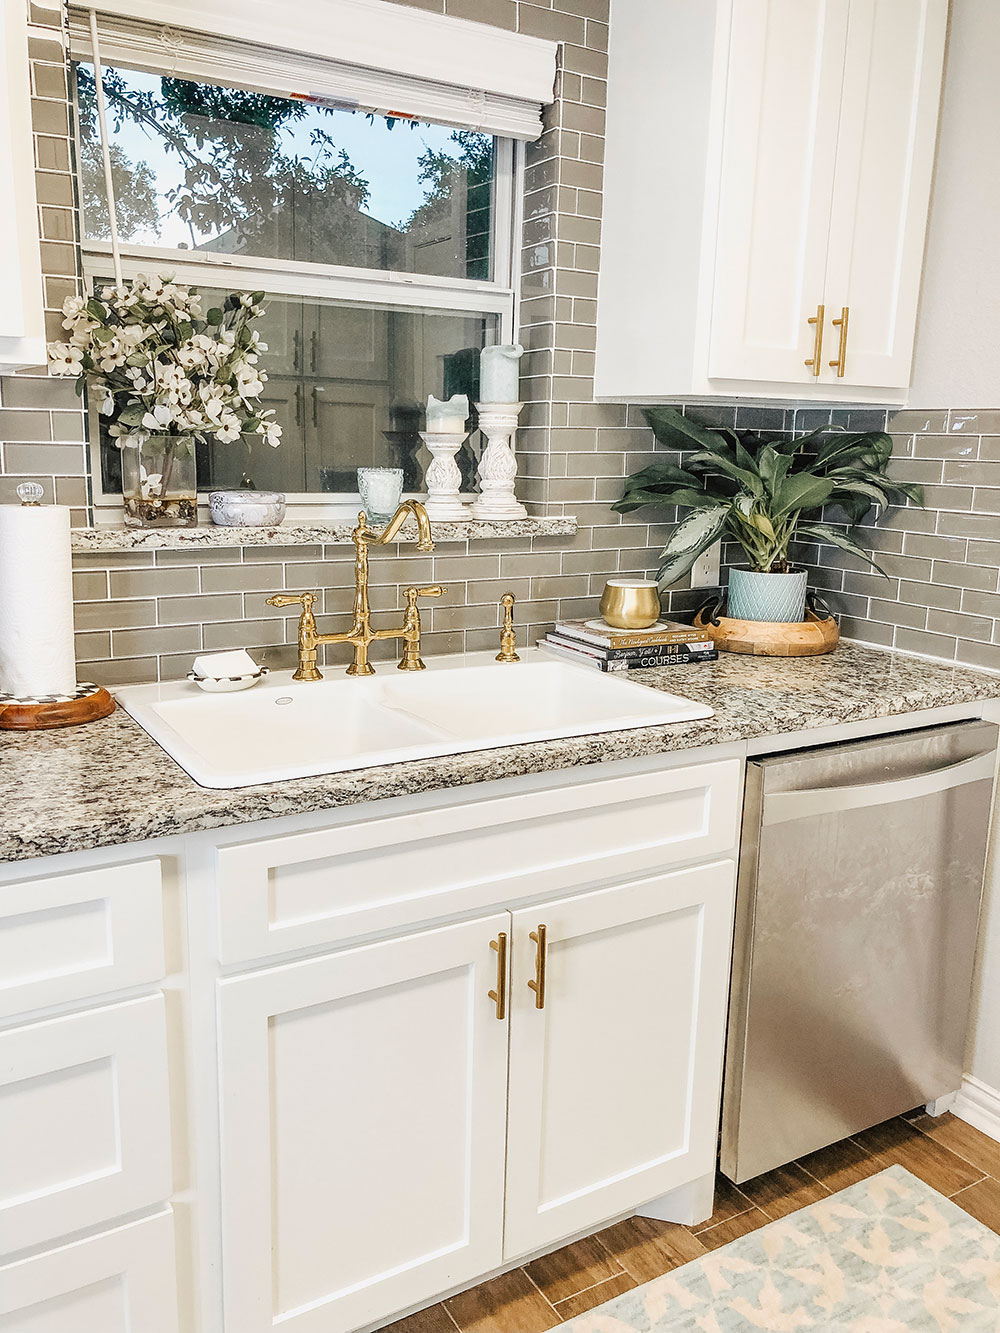 Our Kitchen Sink Woes + Our Small Kitchen Reveal | Vandi Fair on Kitchen Sink Ideas  id=37322